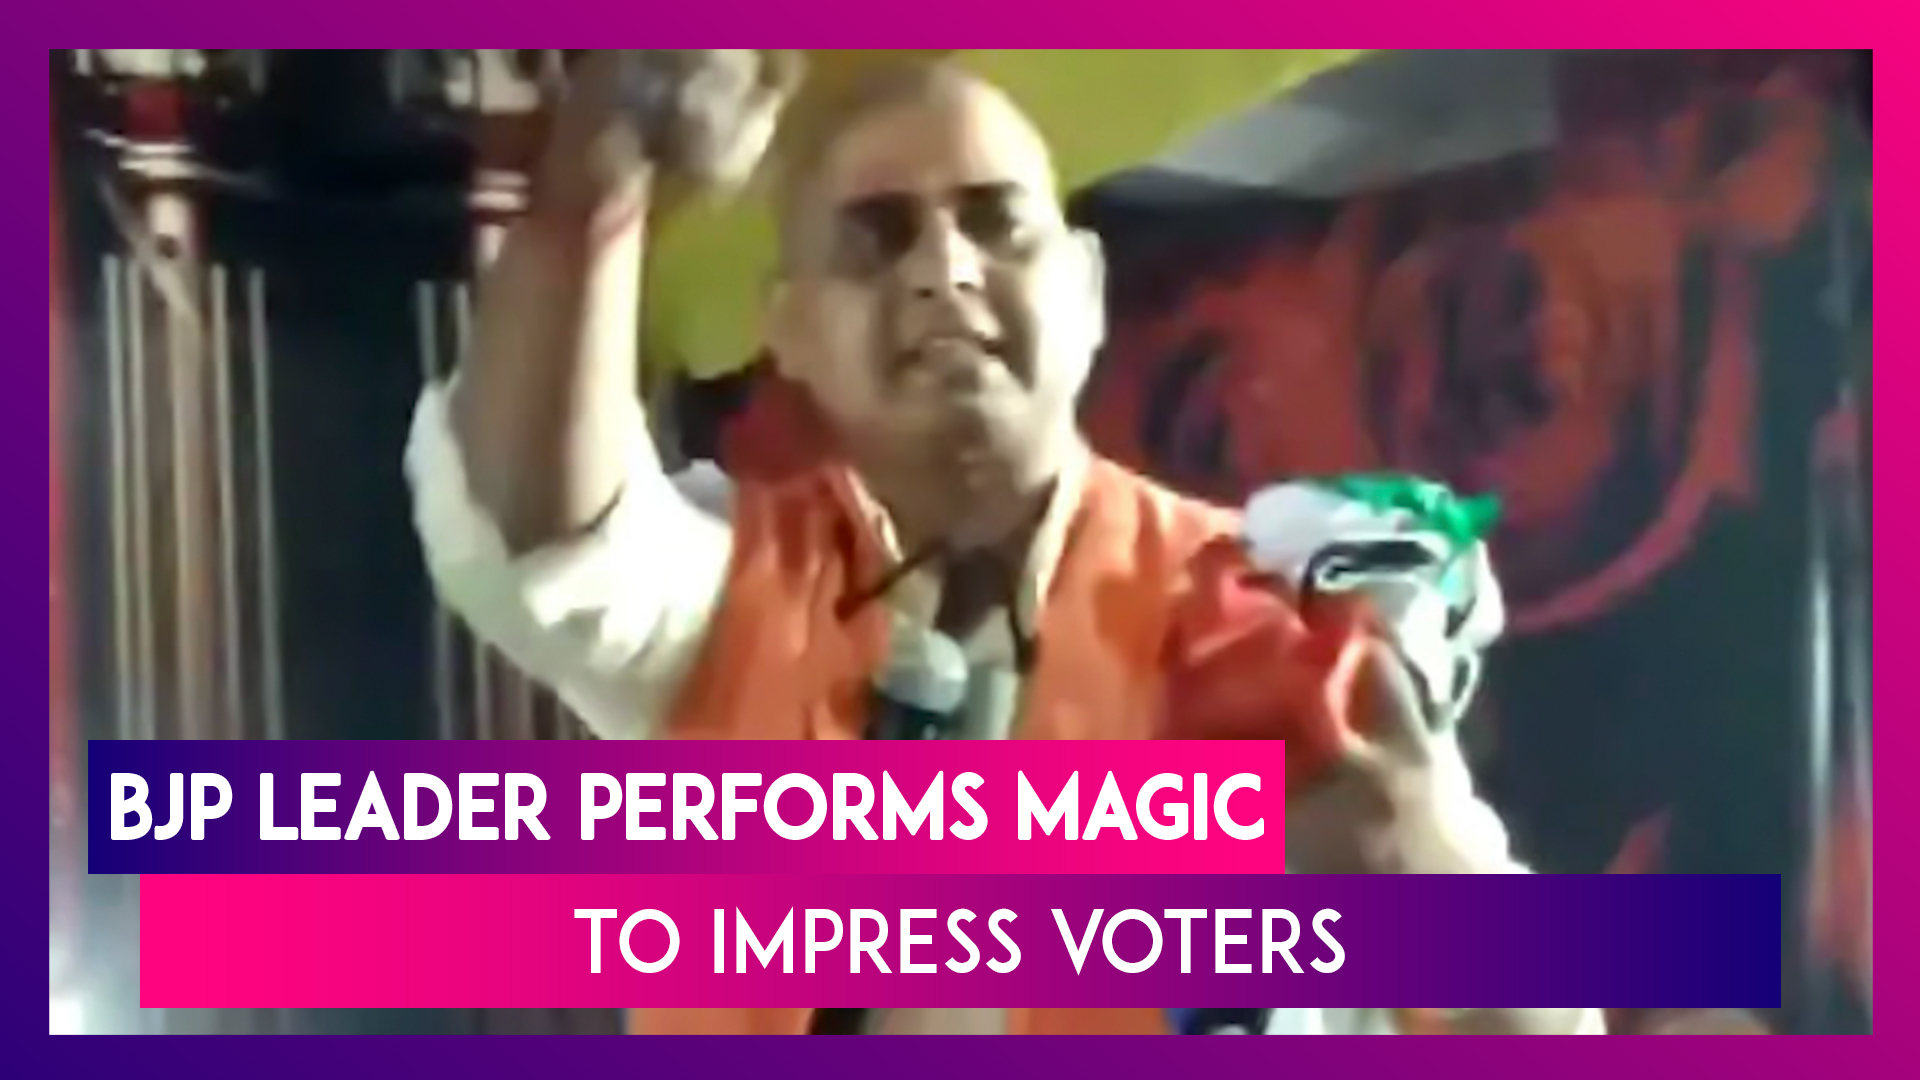 BJP Councilor Performs Magic To Lure Voters In Rampur, UP Ahead Of Bypolls